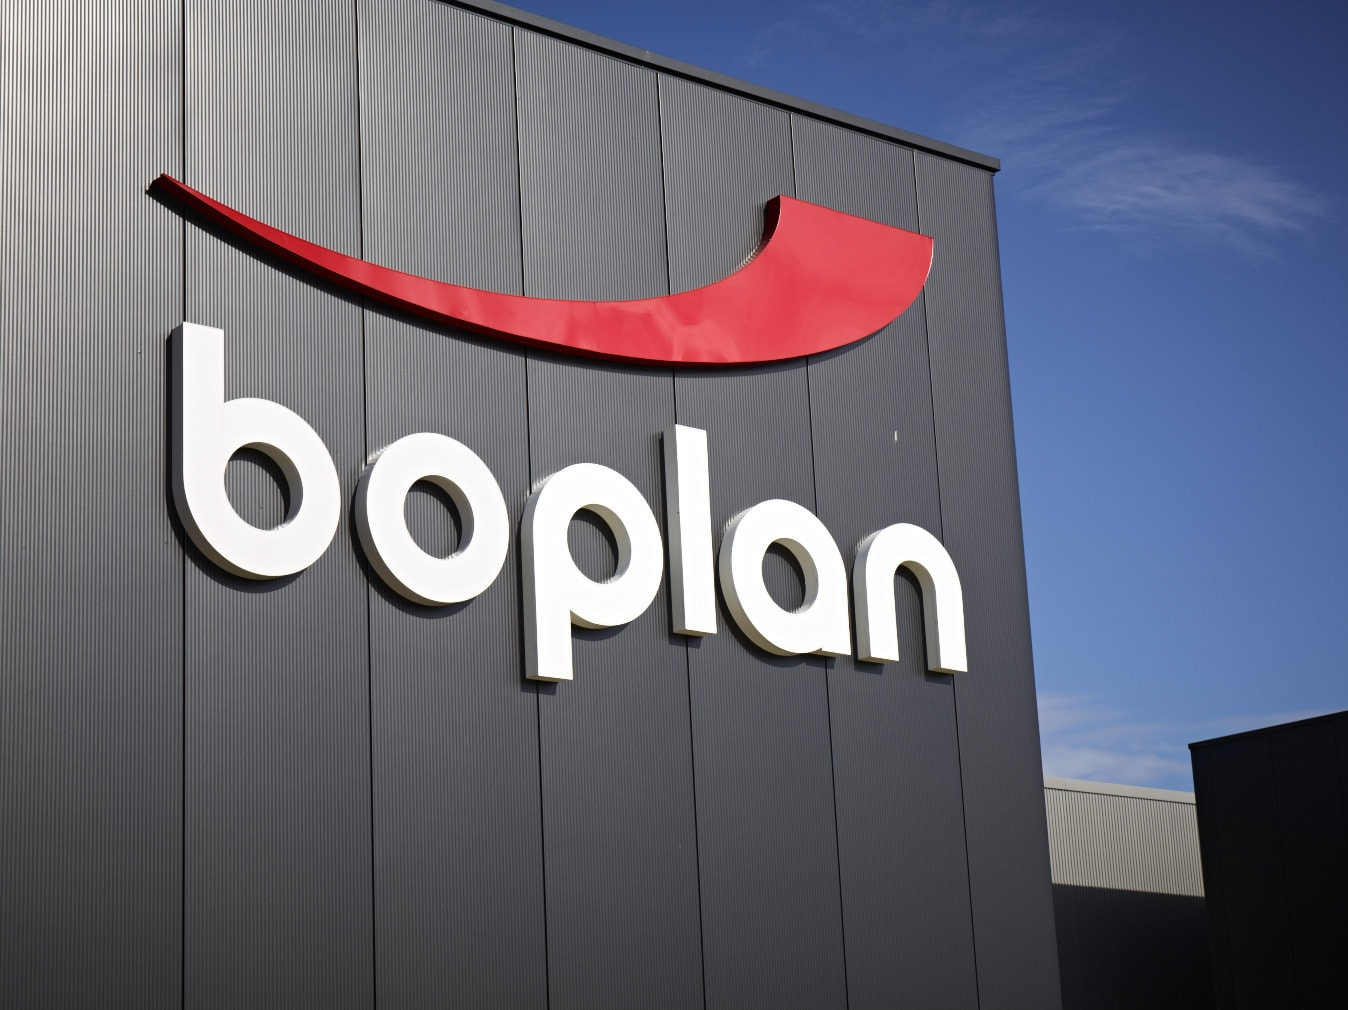 Boplan logo headquarters building